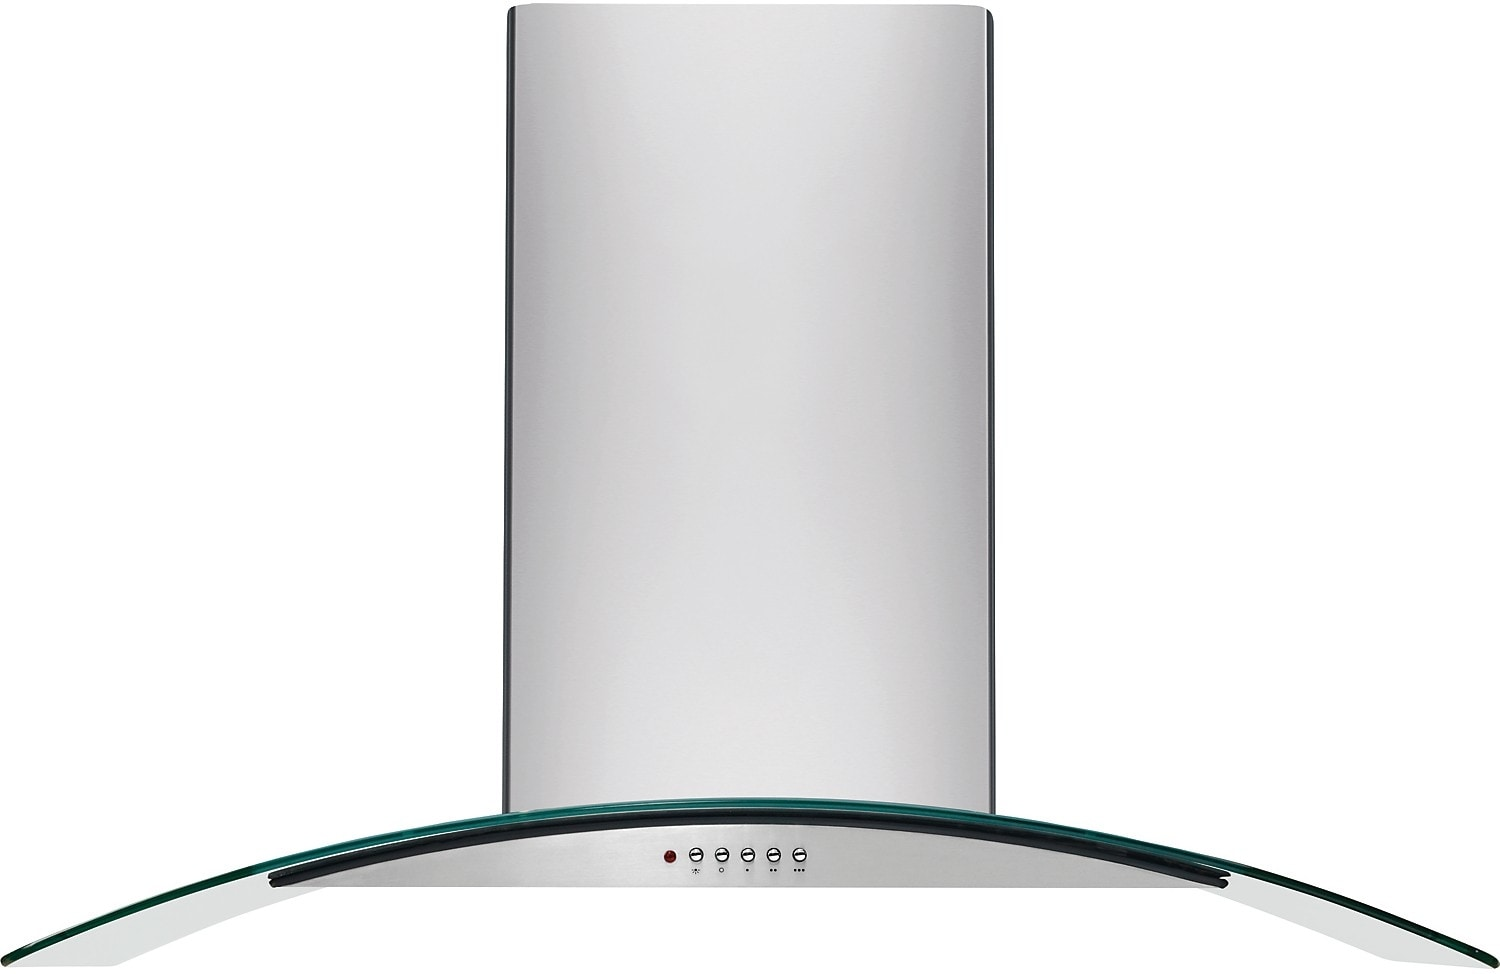 "Cooking Products - Frigidaire 36"" Range Hood - Stainless Steel"